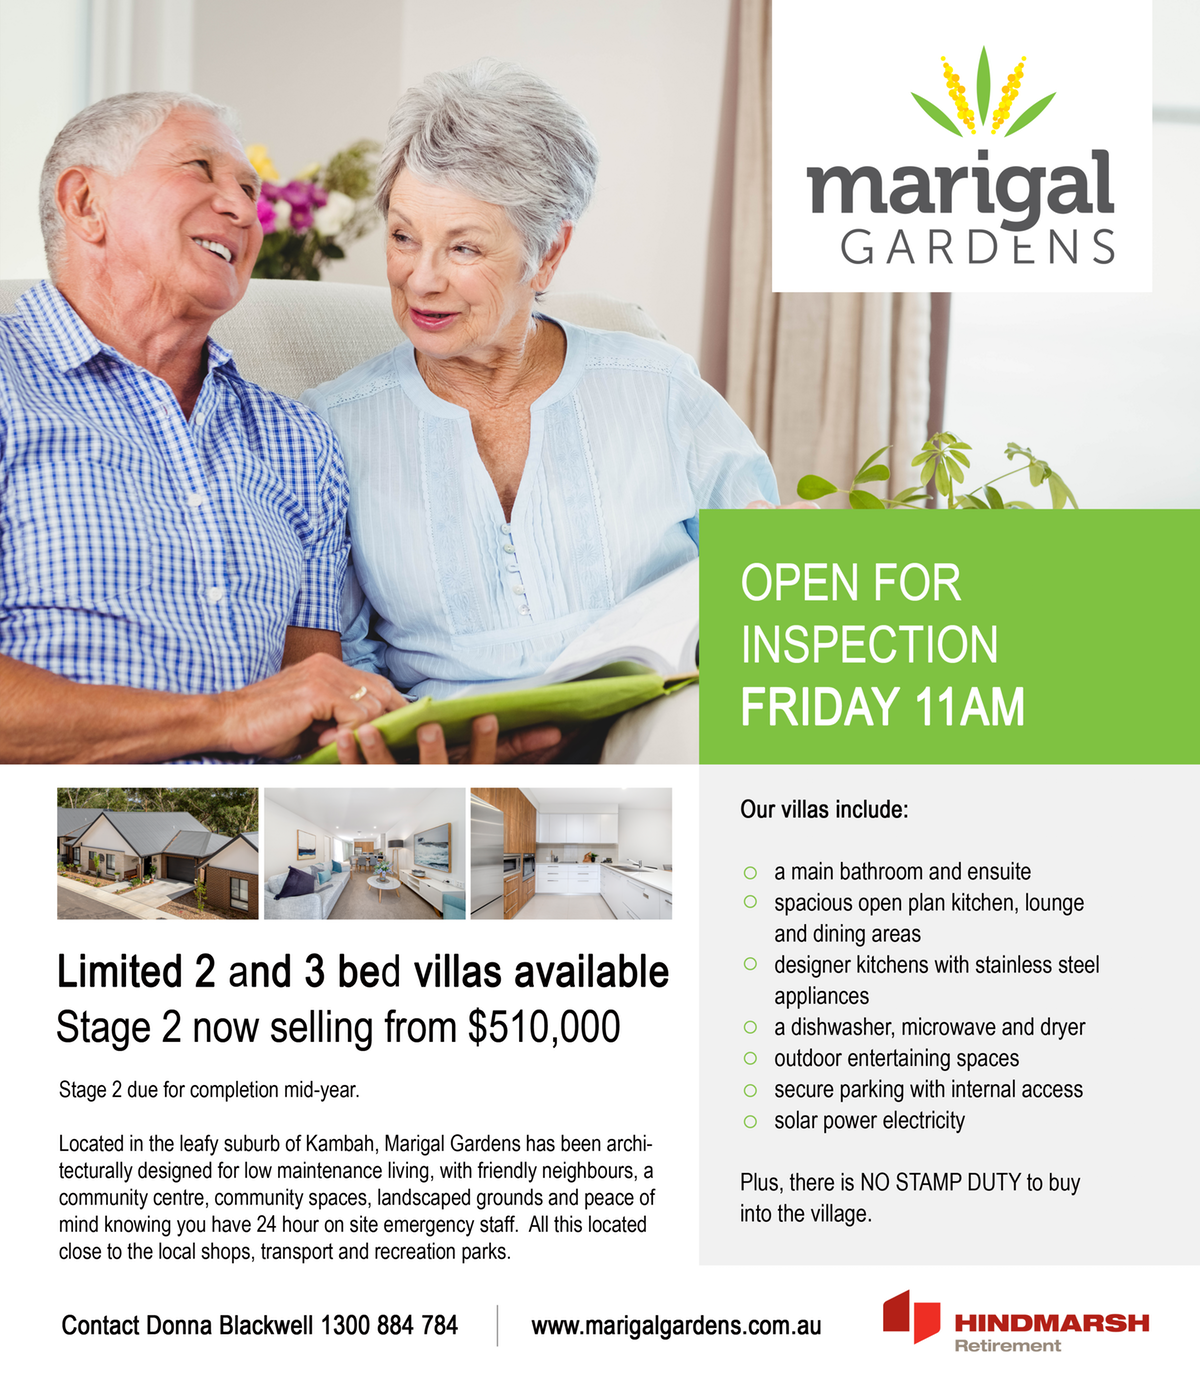 Advertisements for Retirement Homes